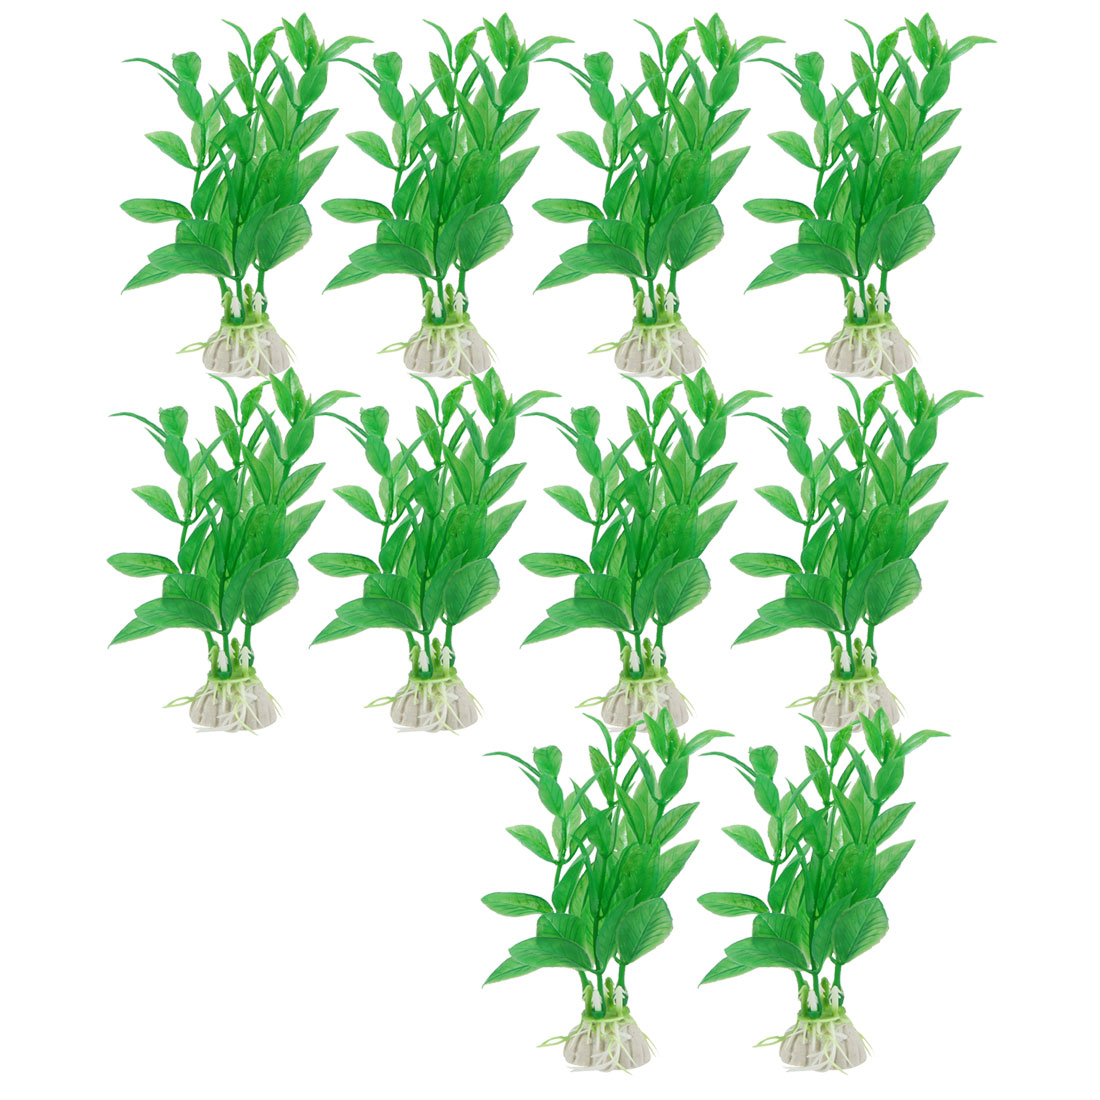 "10 Pcs 3.5"" High Green Aquarium Landscaping Simulation Aquatic Grass Decor"